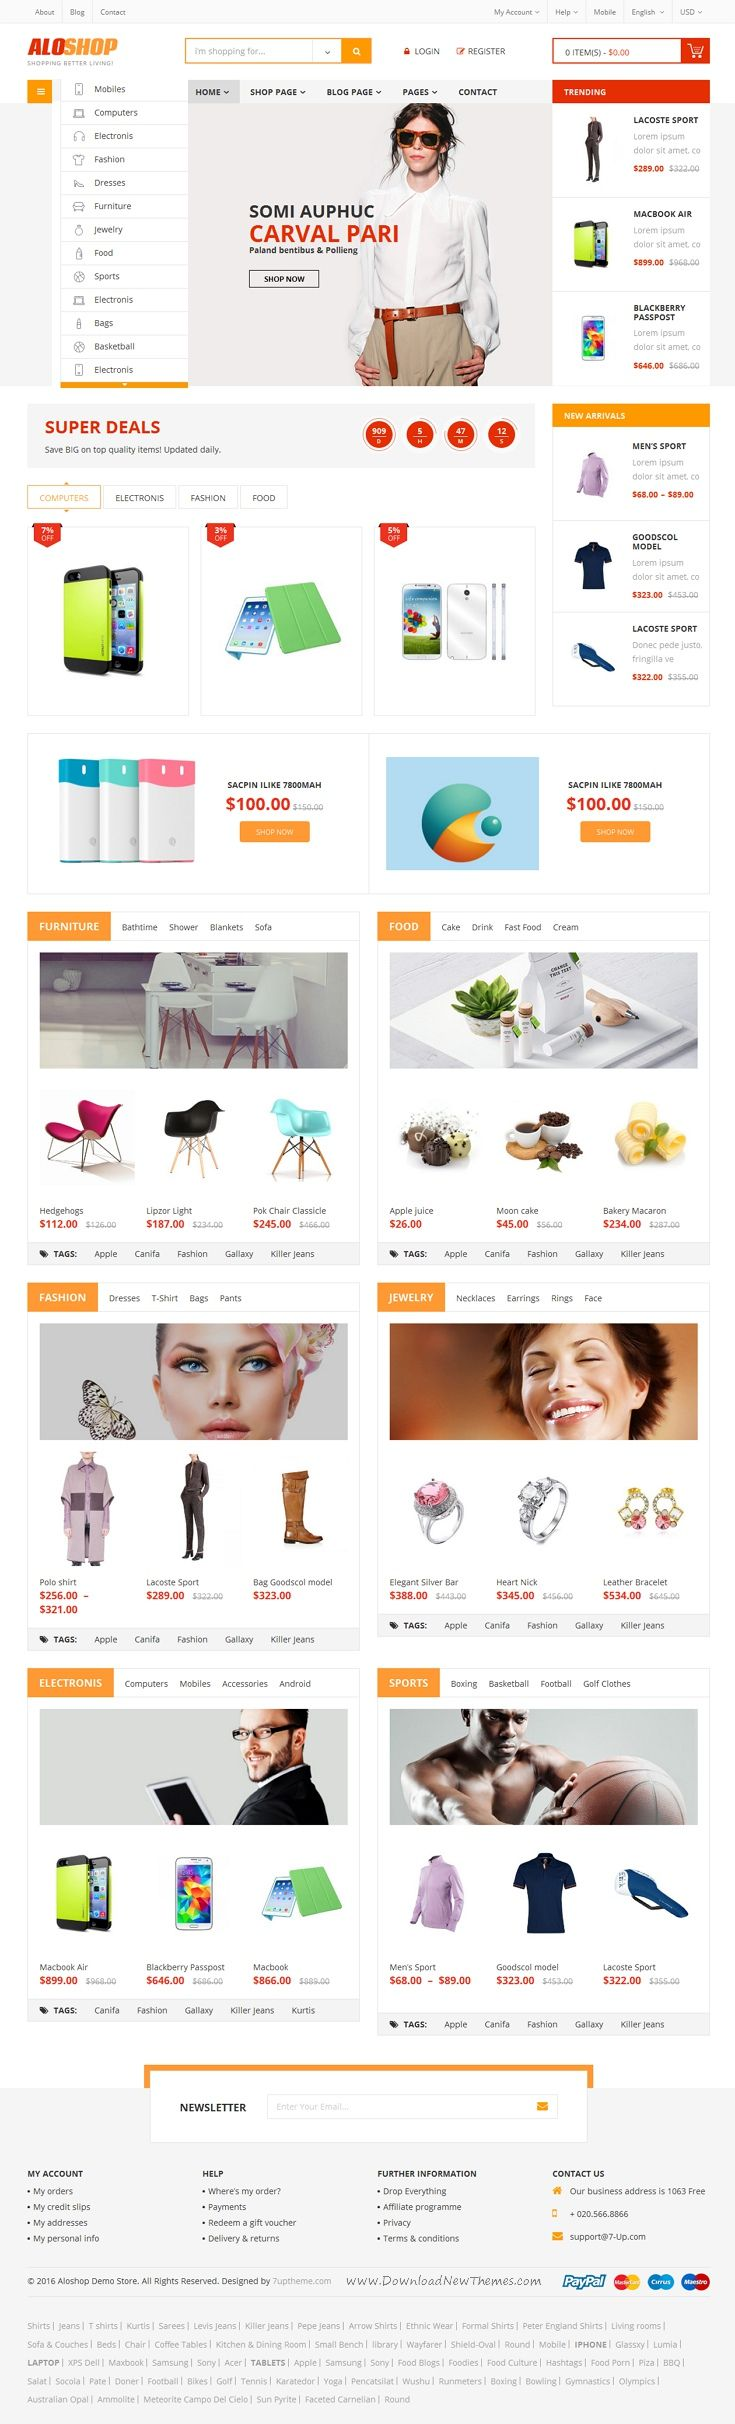 AloShop is stylist WooCommerce WordPress #Theme for multipurpose #eCommerce #website. Comes with 12+ homepage style and amazing features. Download Now!